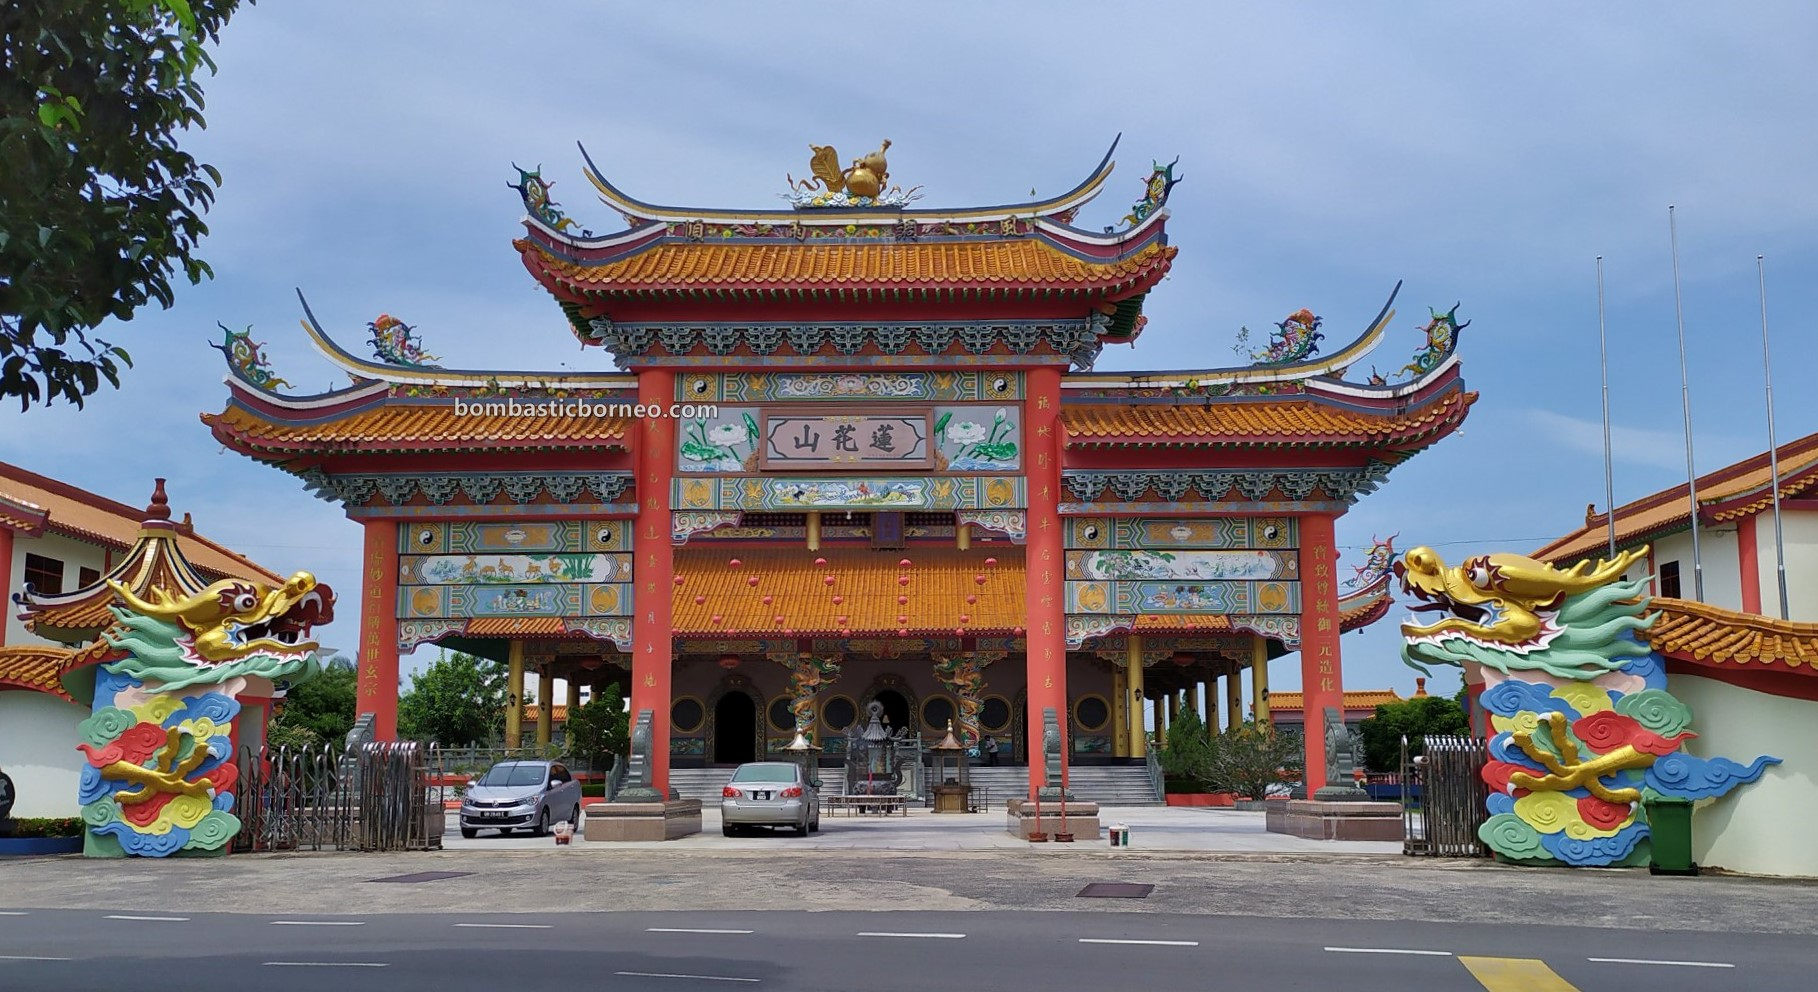 Lian Hua San Temple, backpackers, destination, chinese temple, Discover Miri City, exploration, Tourism, tourist attraction, travel guide, Borneo, 穿越婆罗洲游踪, 砂拉越道教旅游景点, 美里莲花山三清殿,